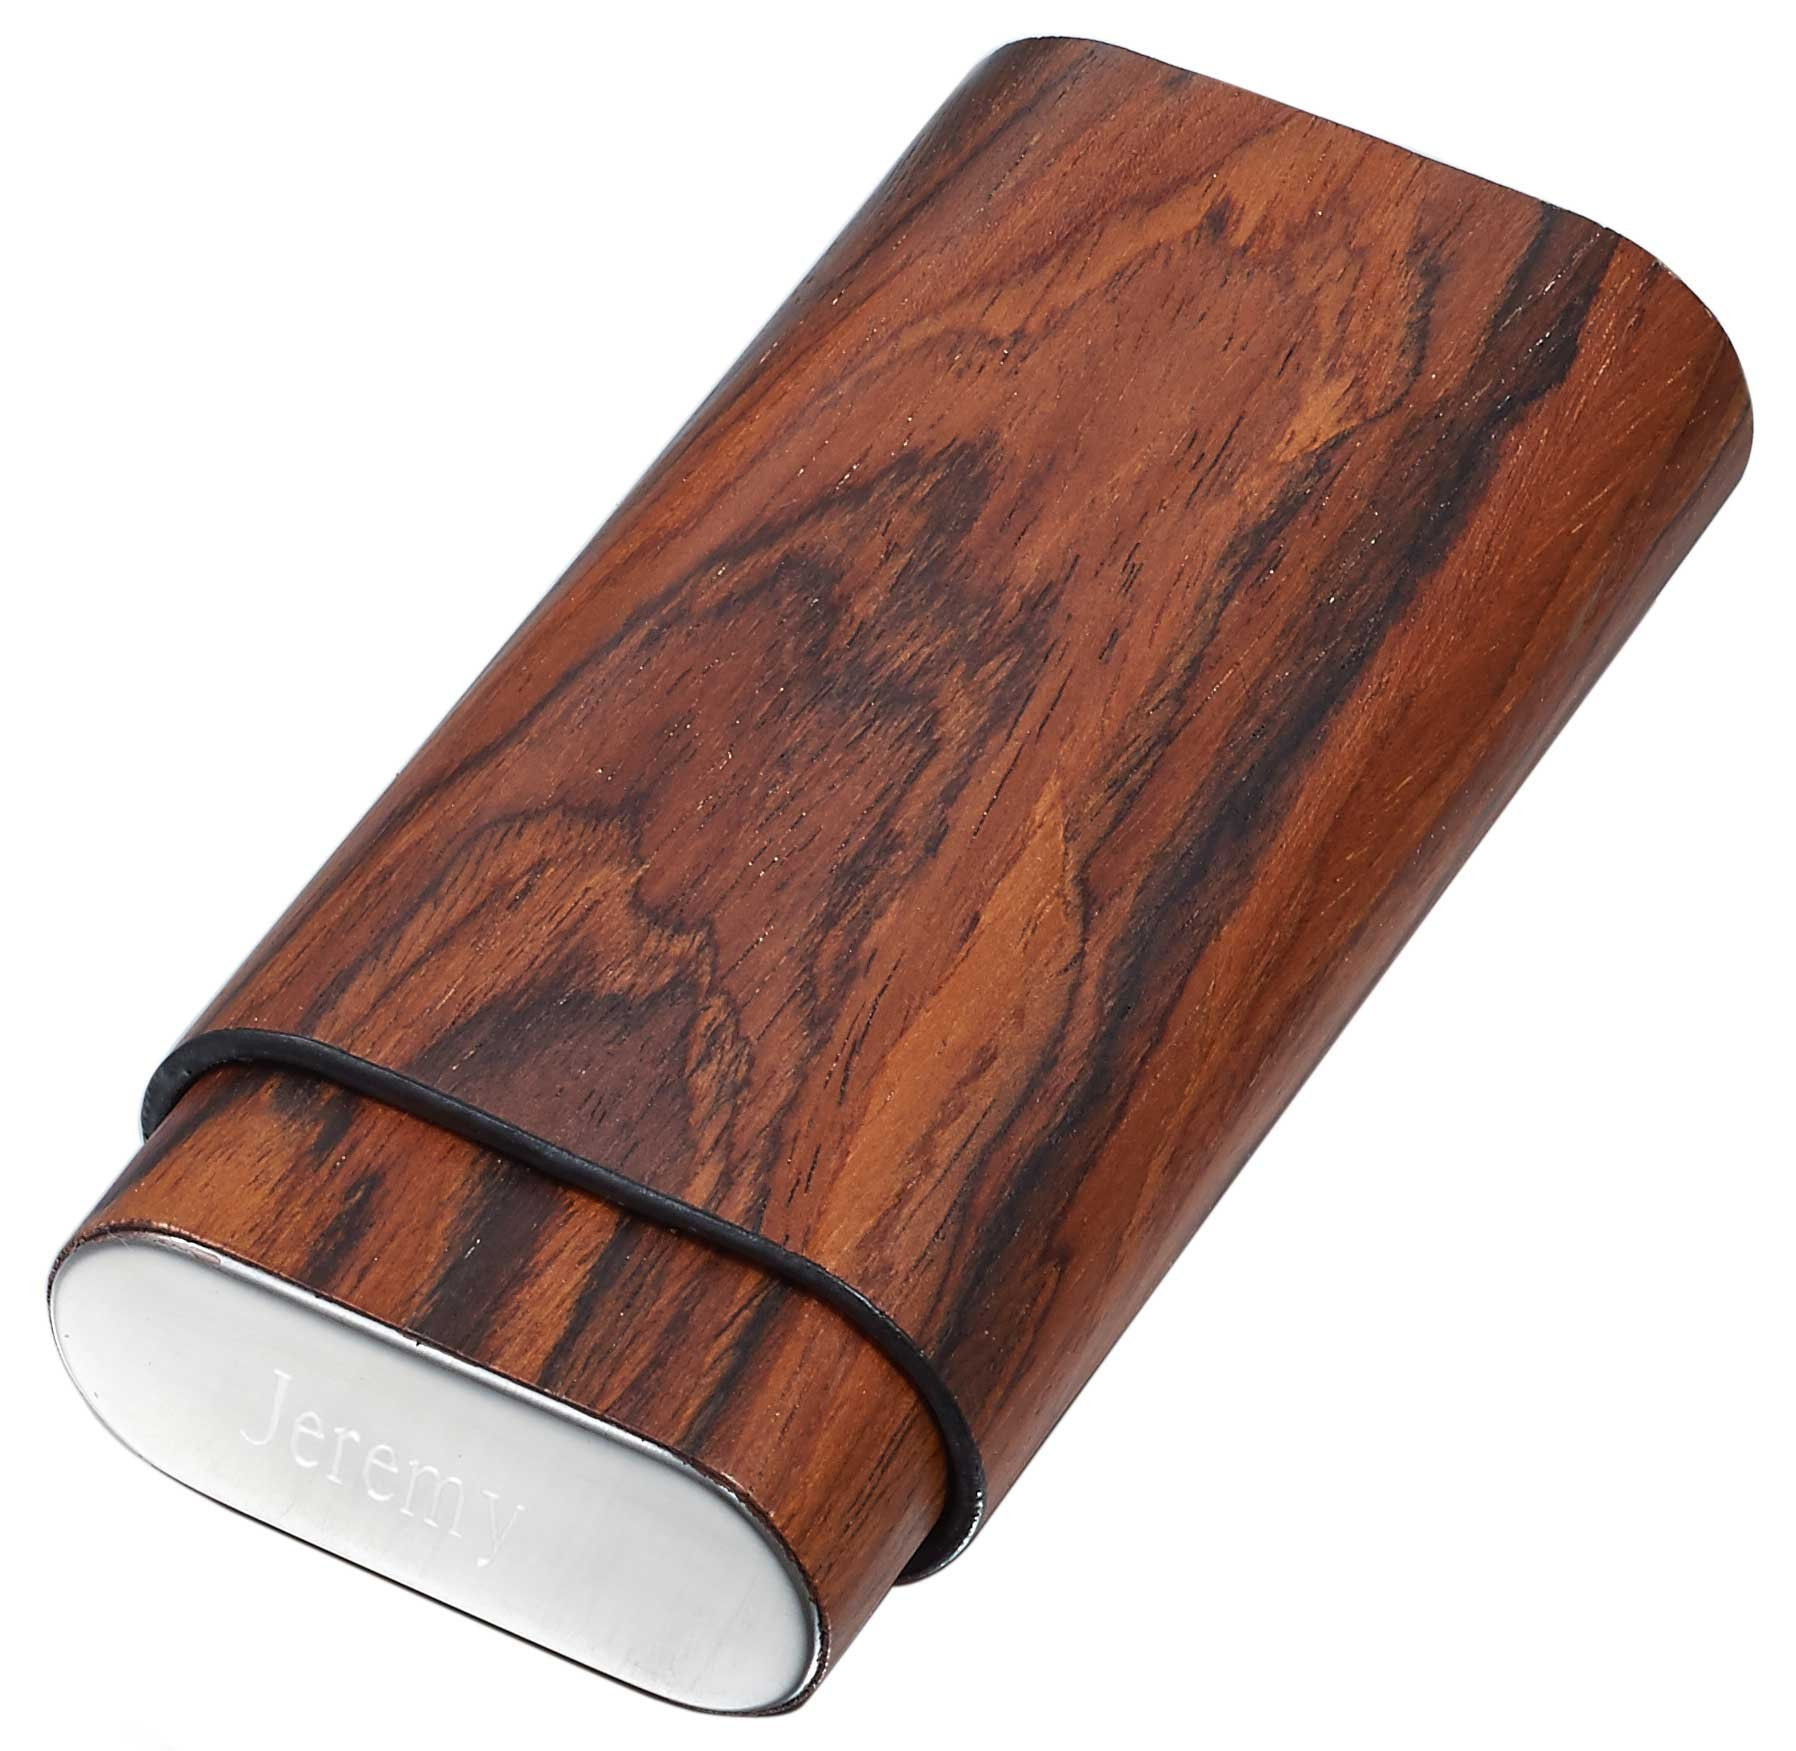 Personalized Visol Natural Wood Cigar Case with Free Engraving